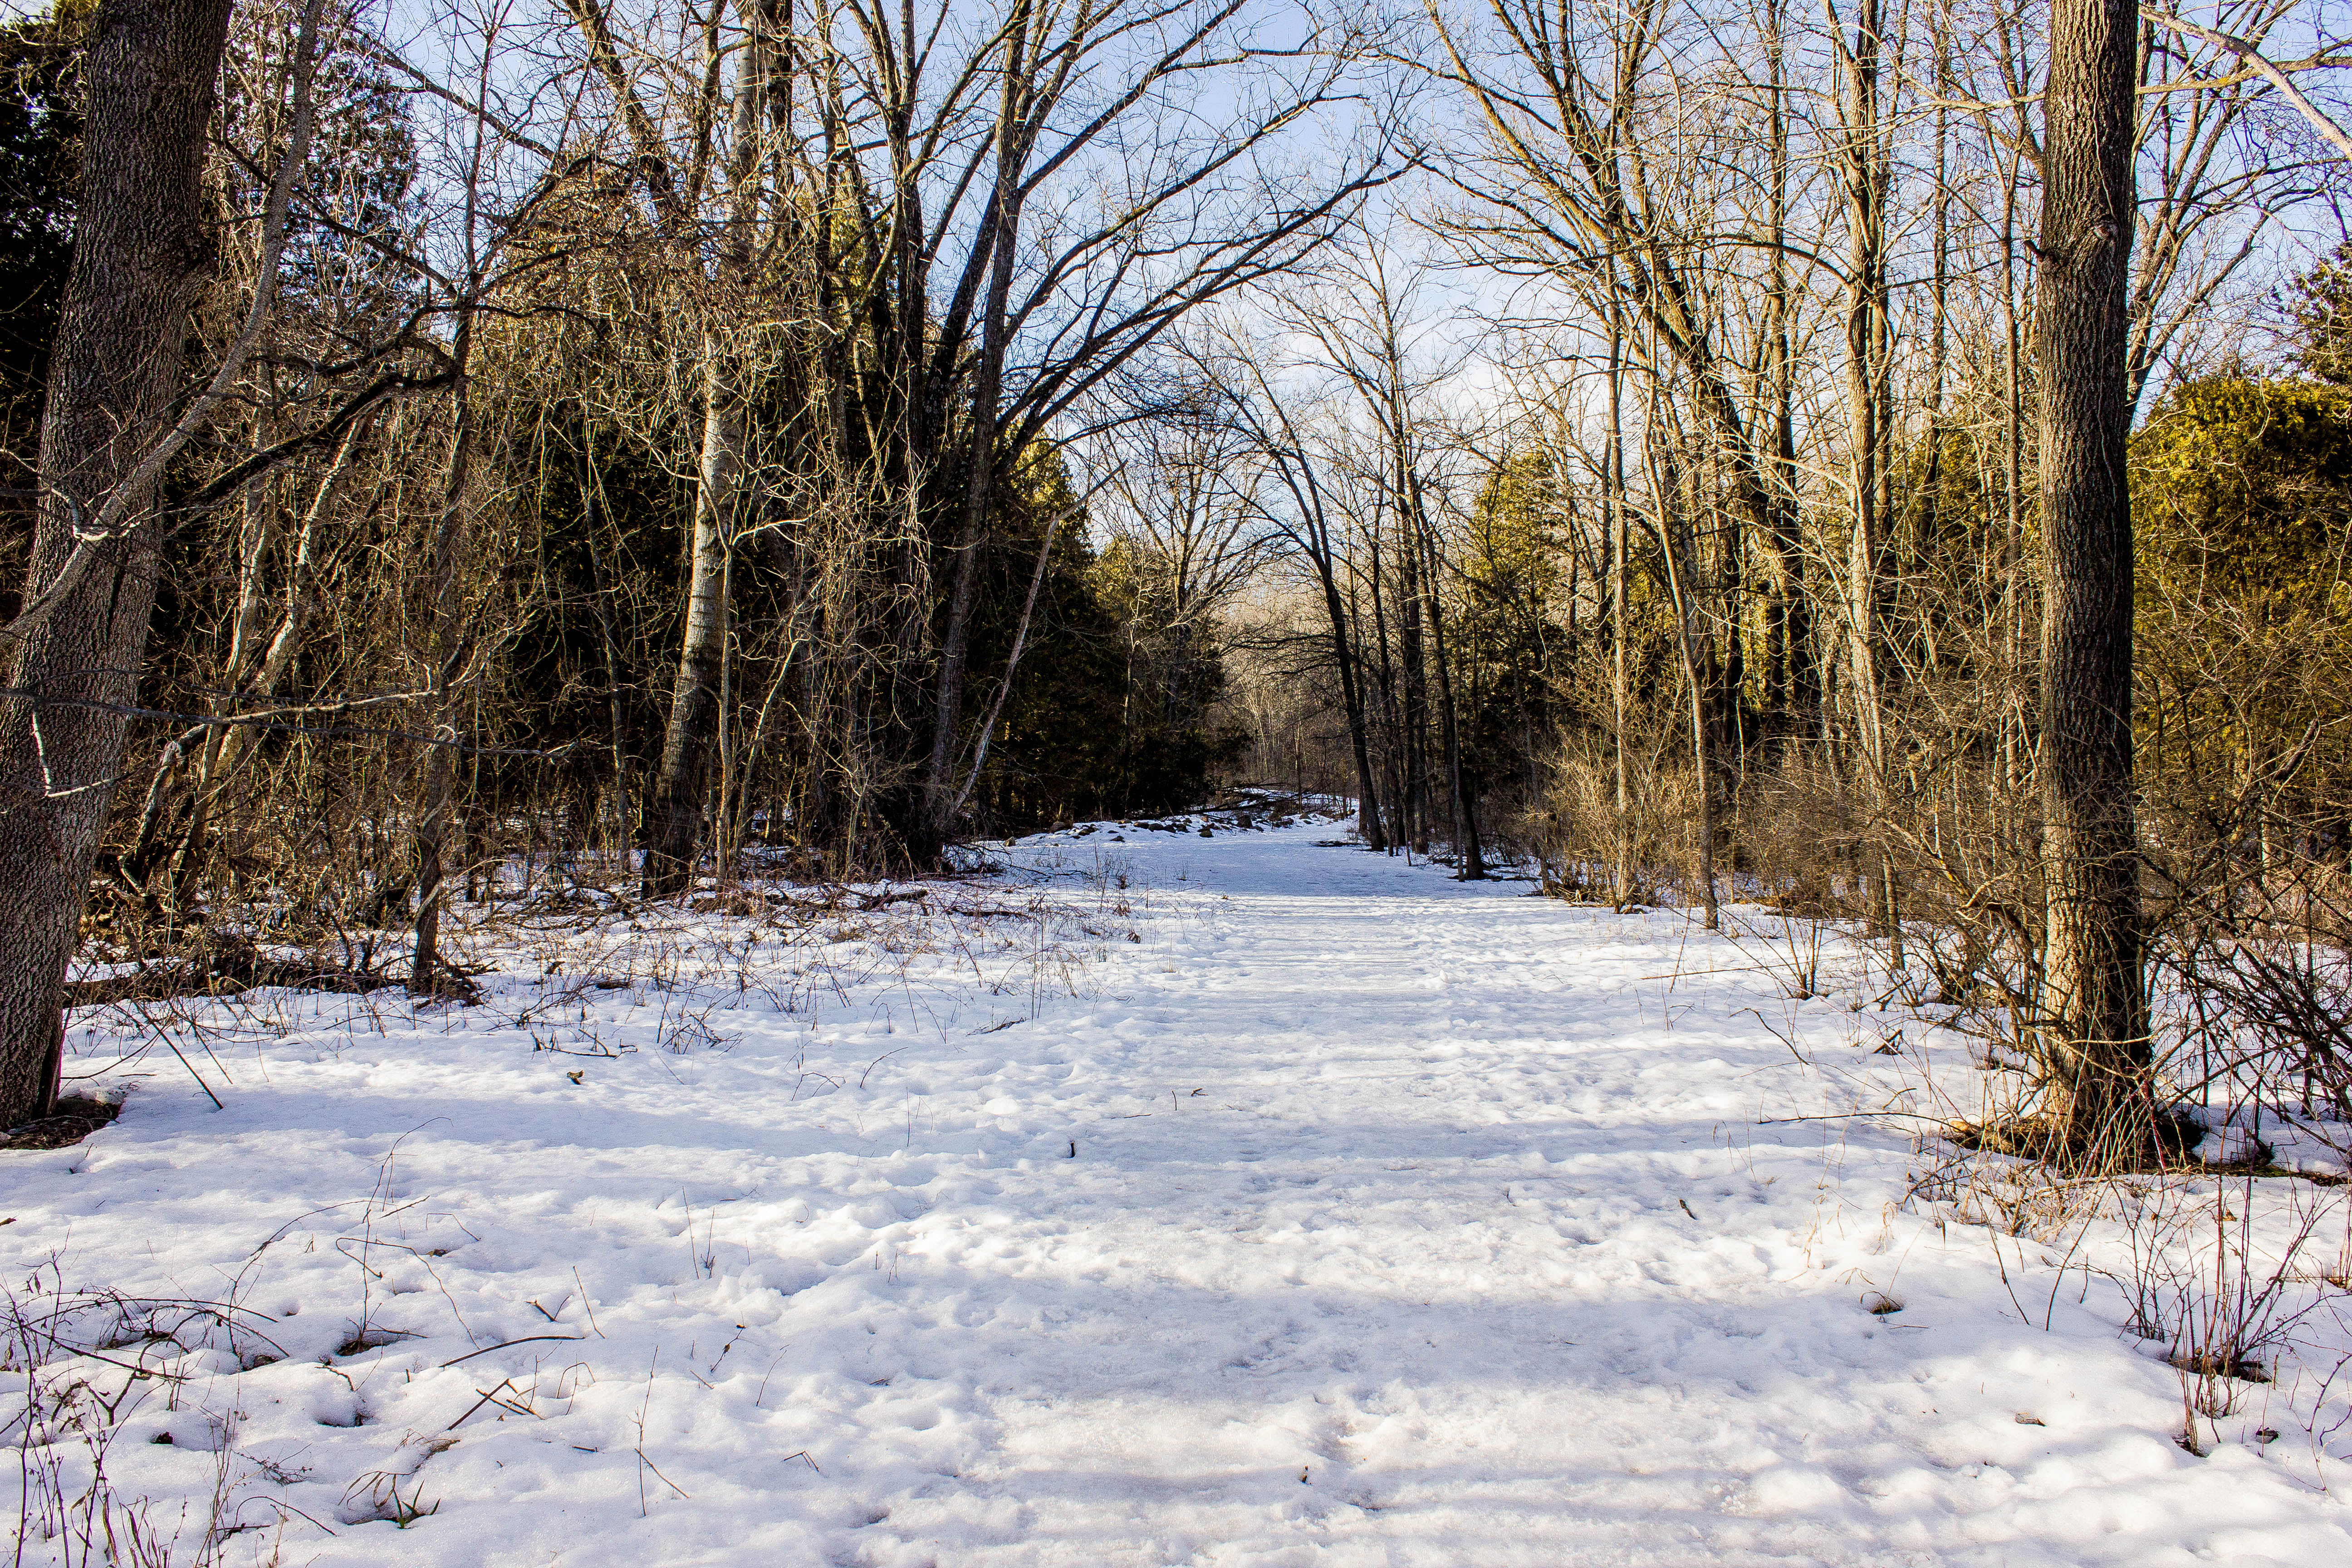 Scenic Of Snowy Trail By Frozen Stream With Common Alder Trees In ...